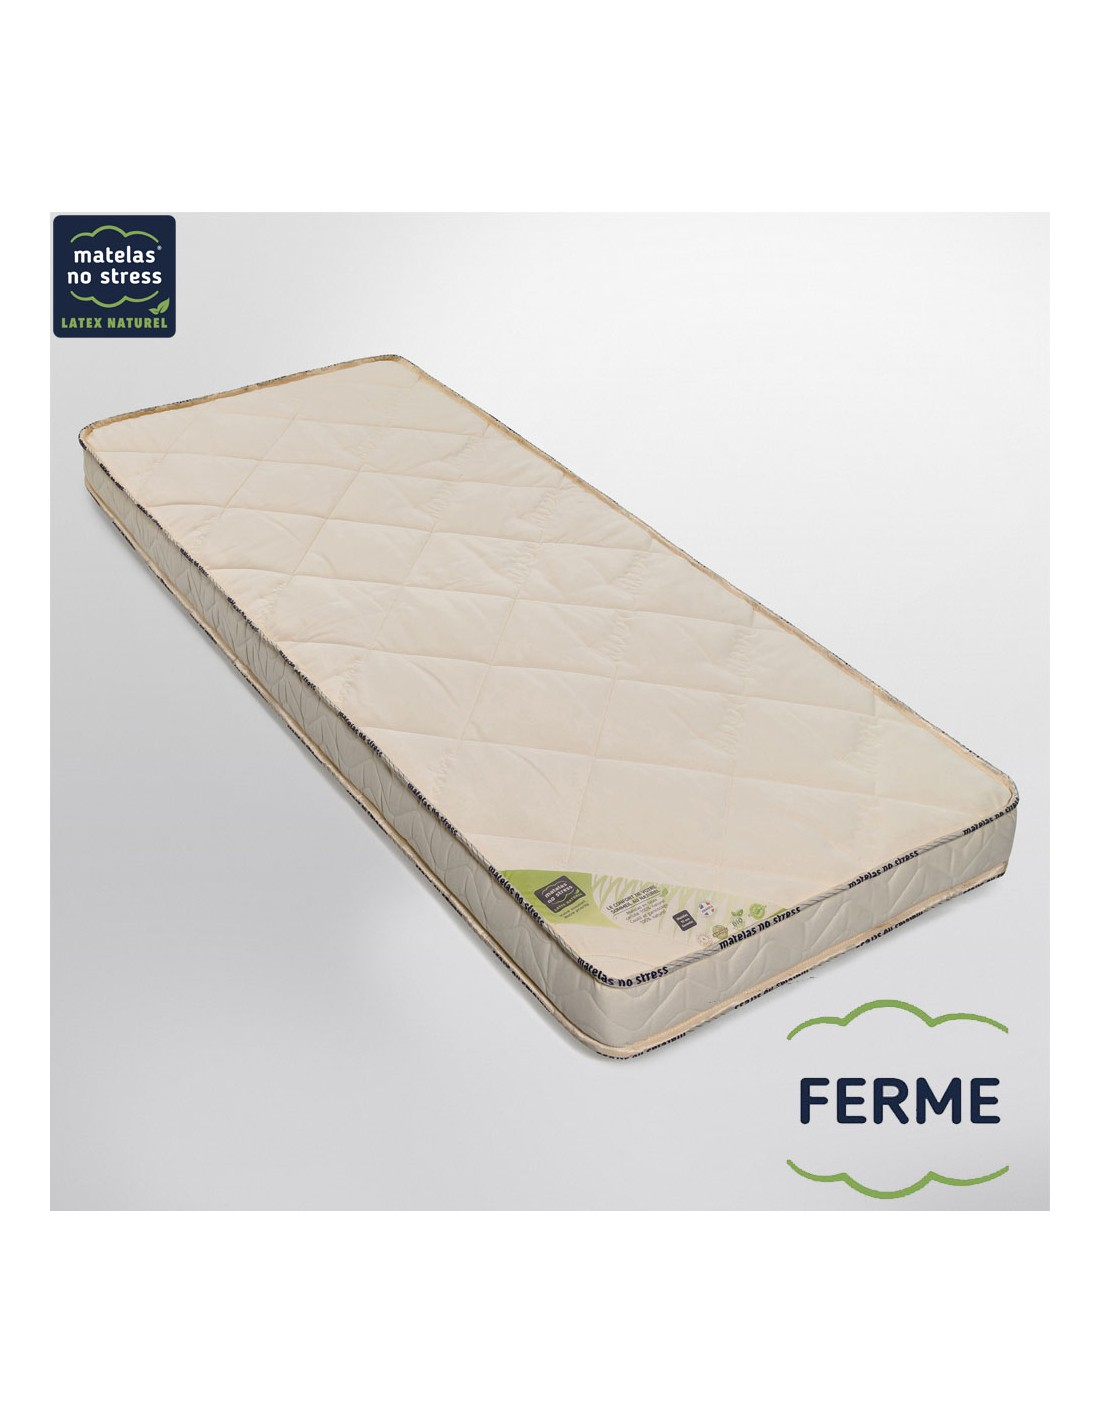 Matelas Latex Bio 160x200 Matelas Latex Naturel 160x200 Bio Charme Médium 14 Cm